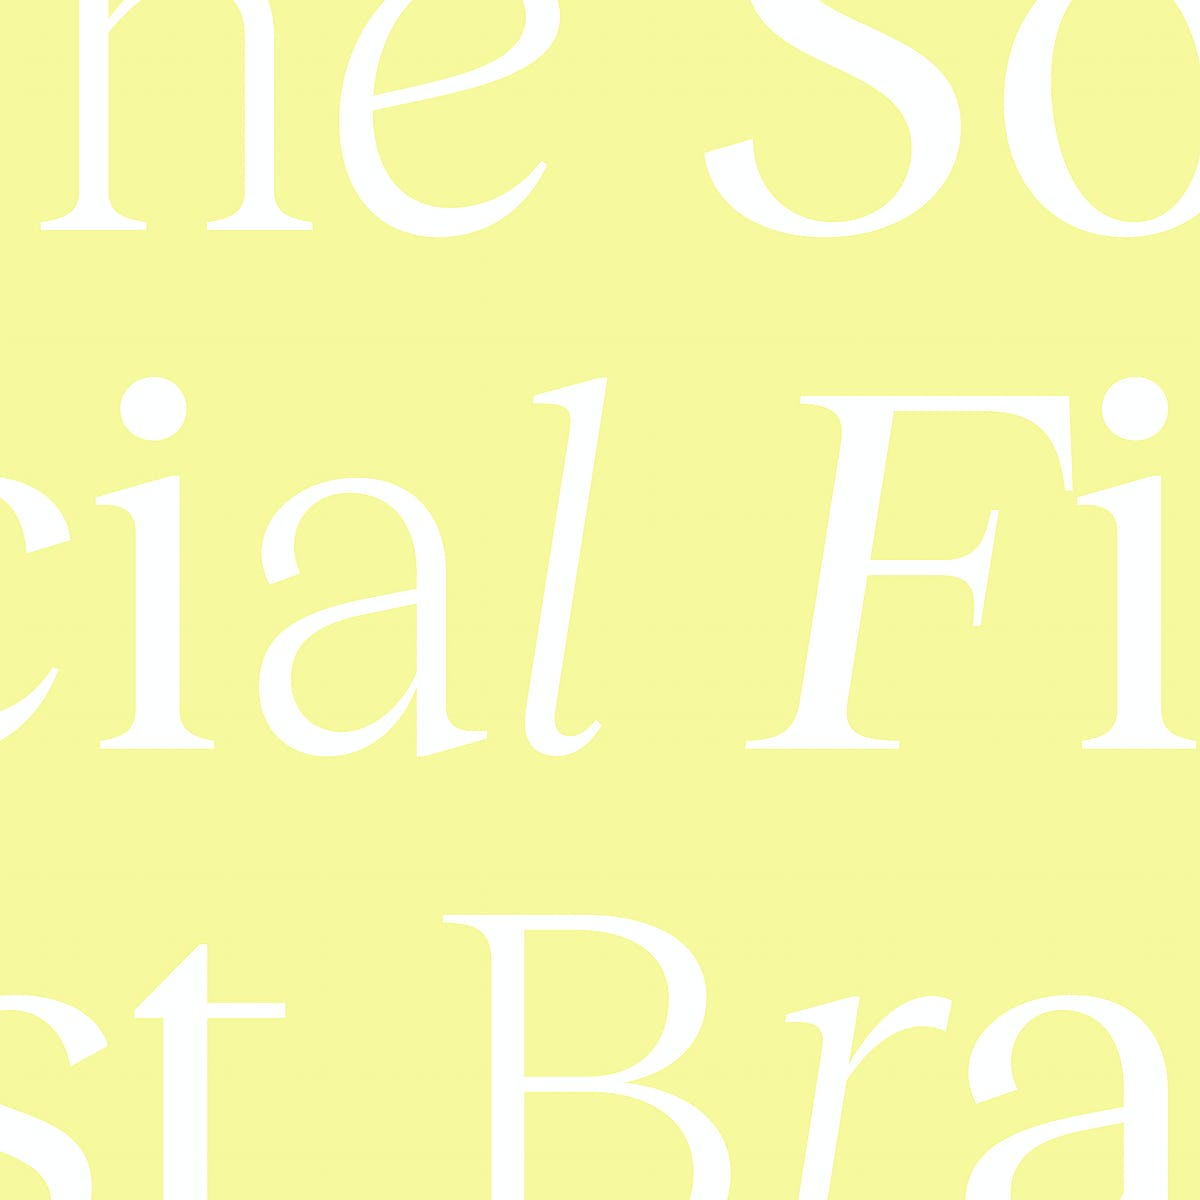 T2 06 Thesocial First Brand